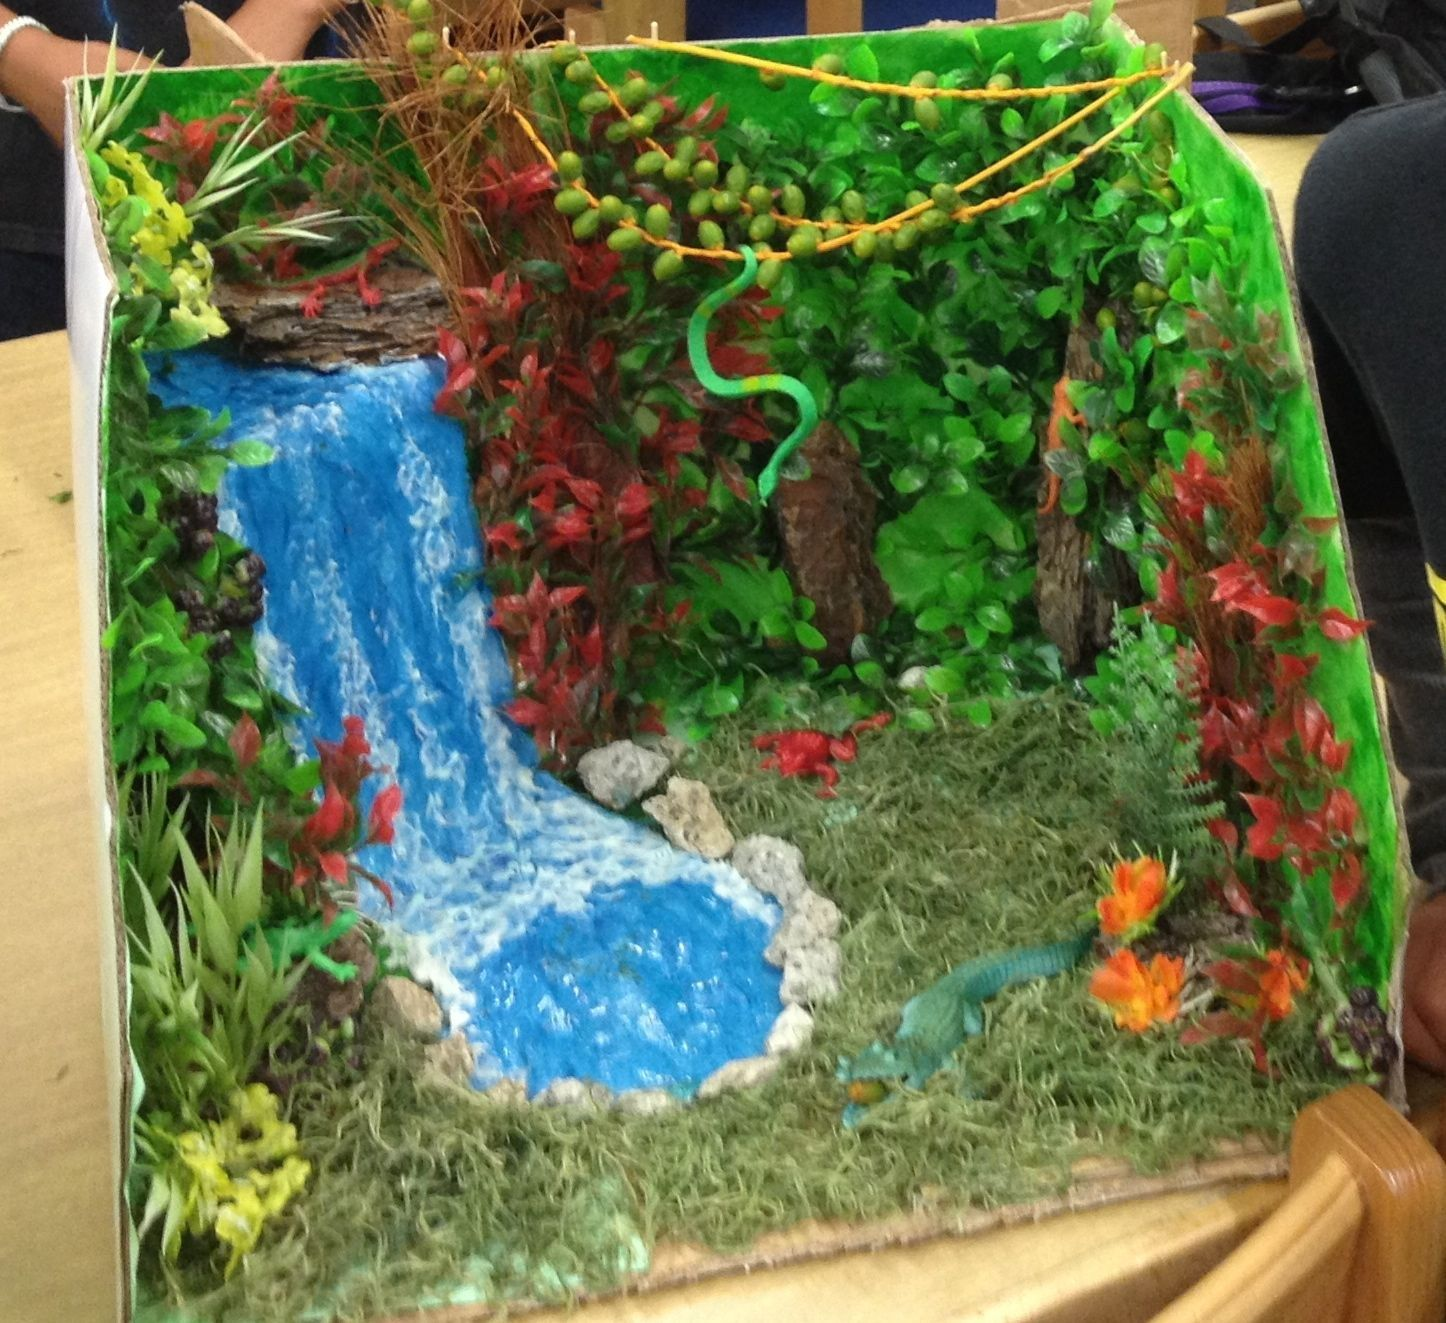 Rainforest habitat Rainforest Habitat, Rainforest Project, Rainforest  Ecosystem, Rainforest Crafts, Biome Project